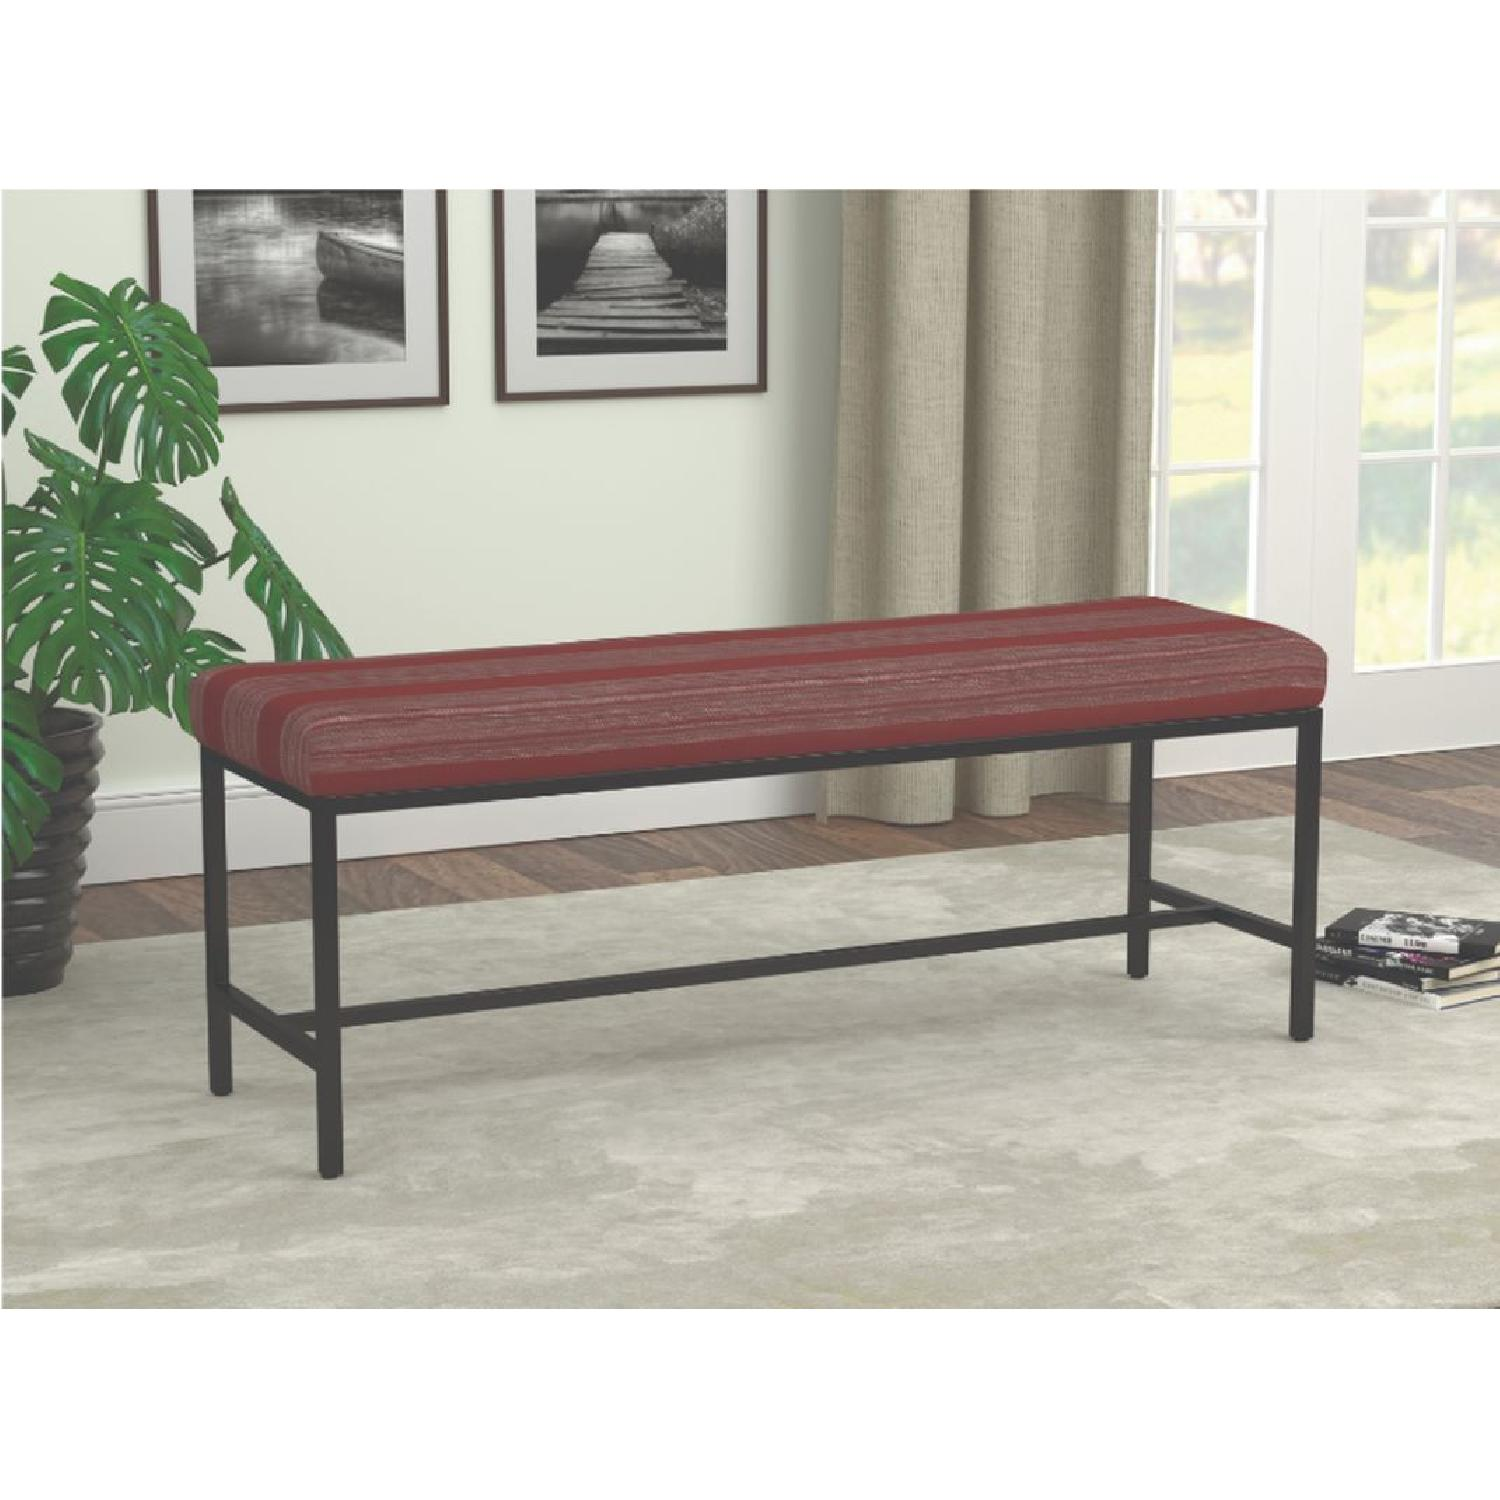 Bench in Electric Style Stripe Cushion w/ Metal Base - image-4